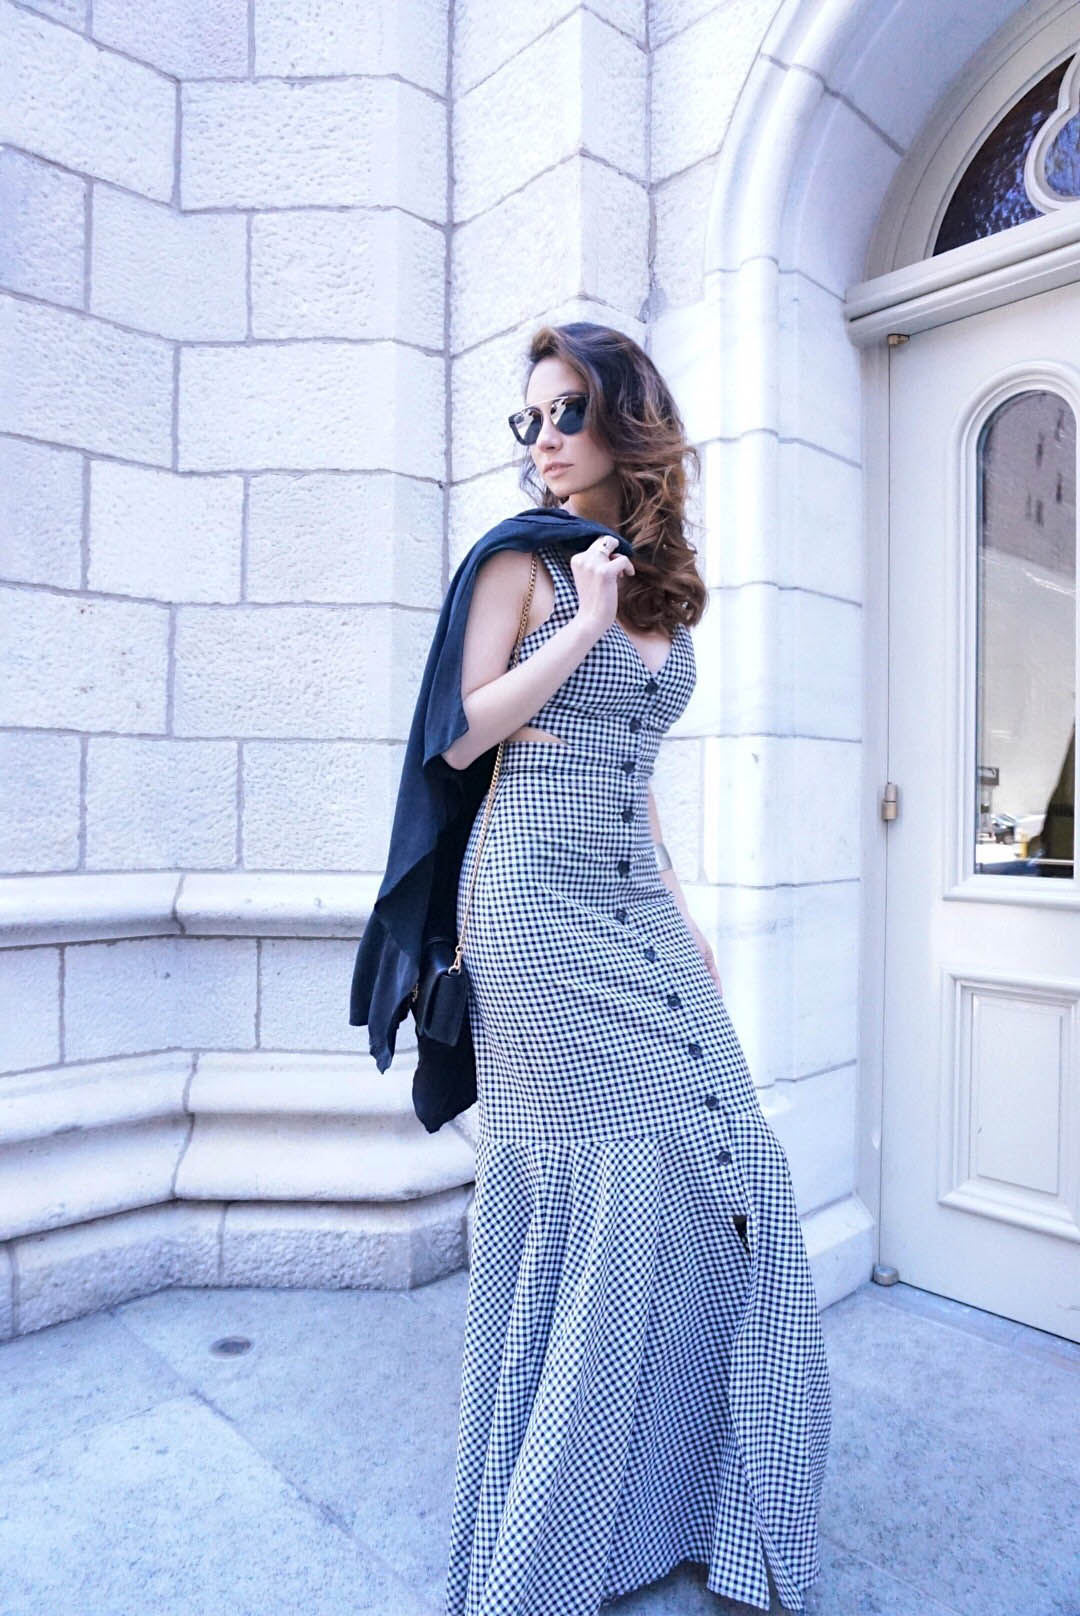 DI Carolina in Gingham dress by Marissa Webb 3